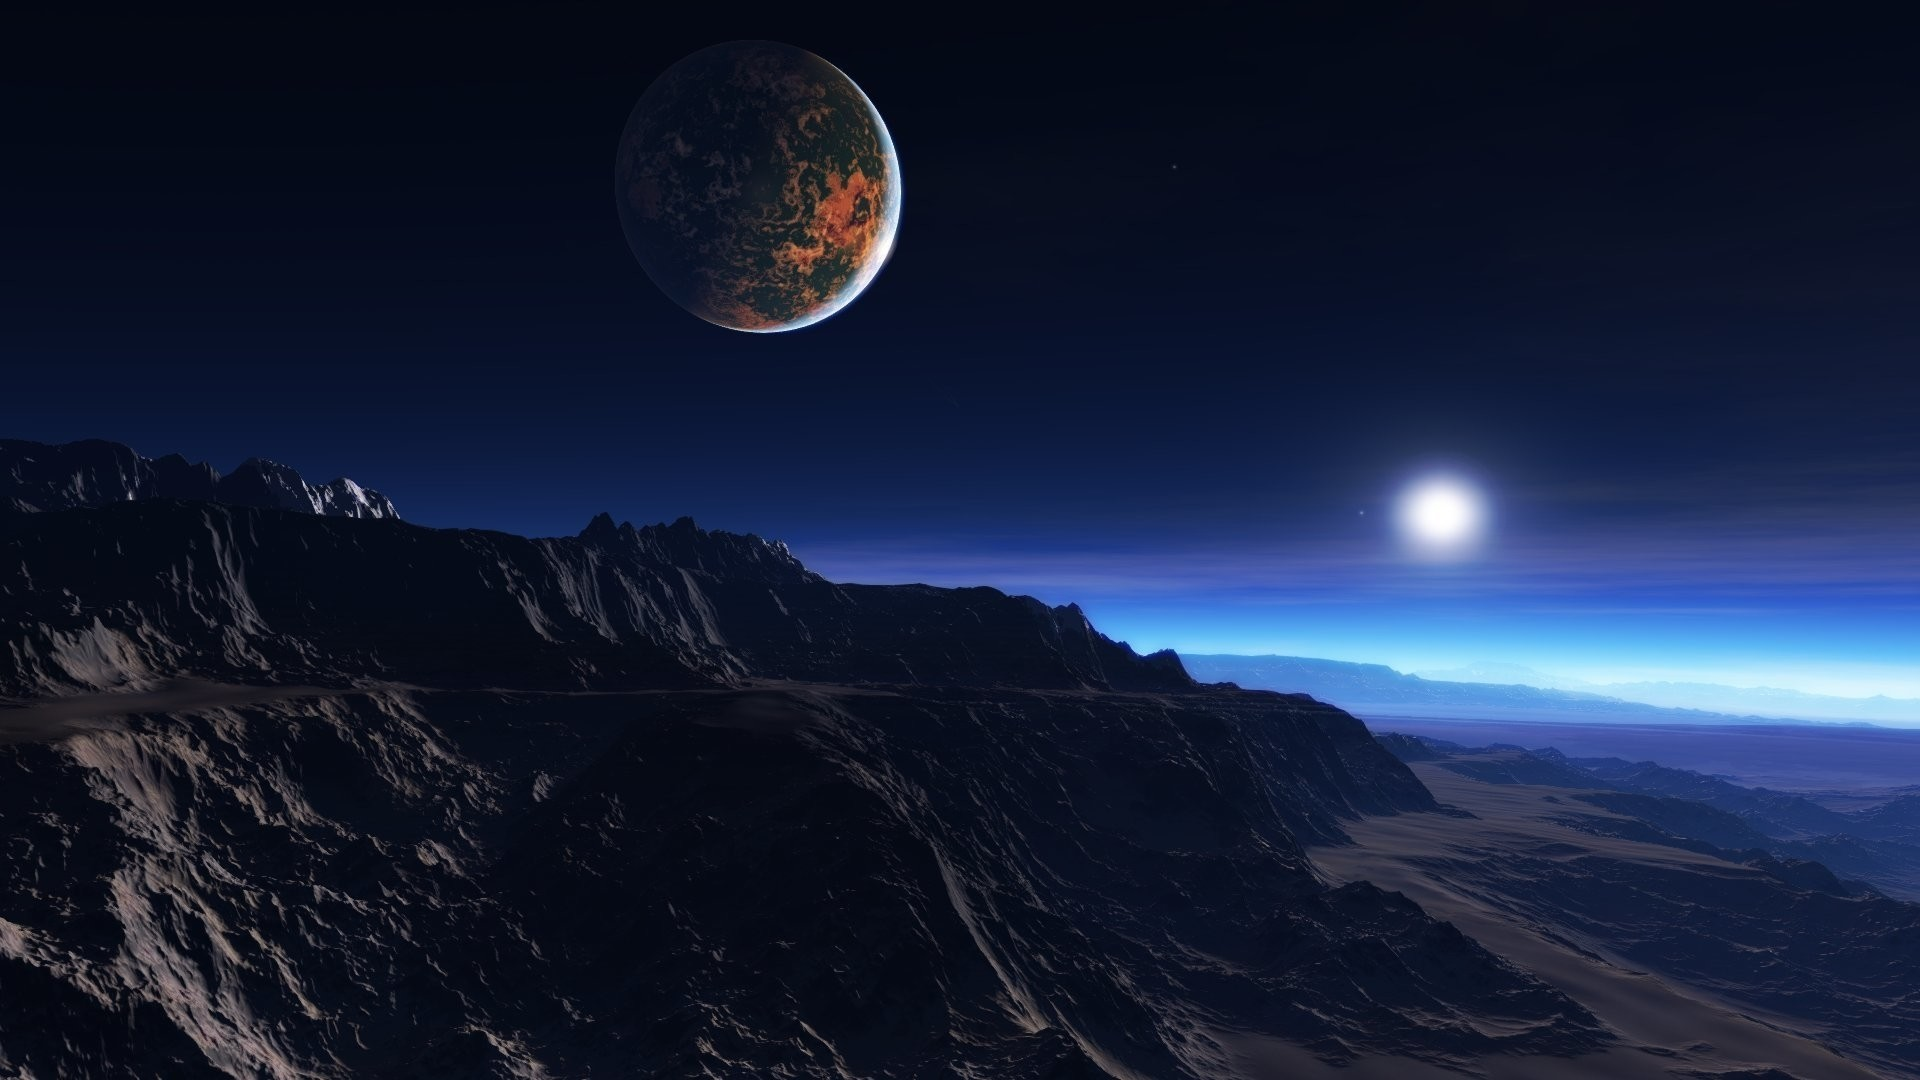 Space wallpapers 1920x1080 84 background pictures for Immagini full hd 1920x1080